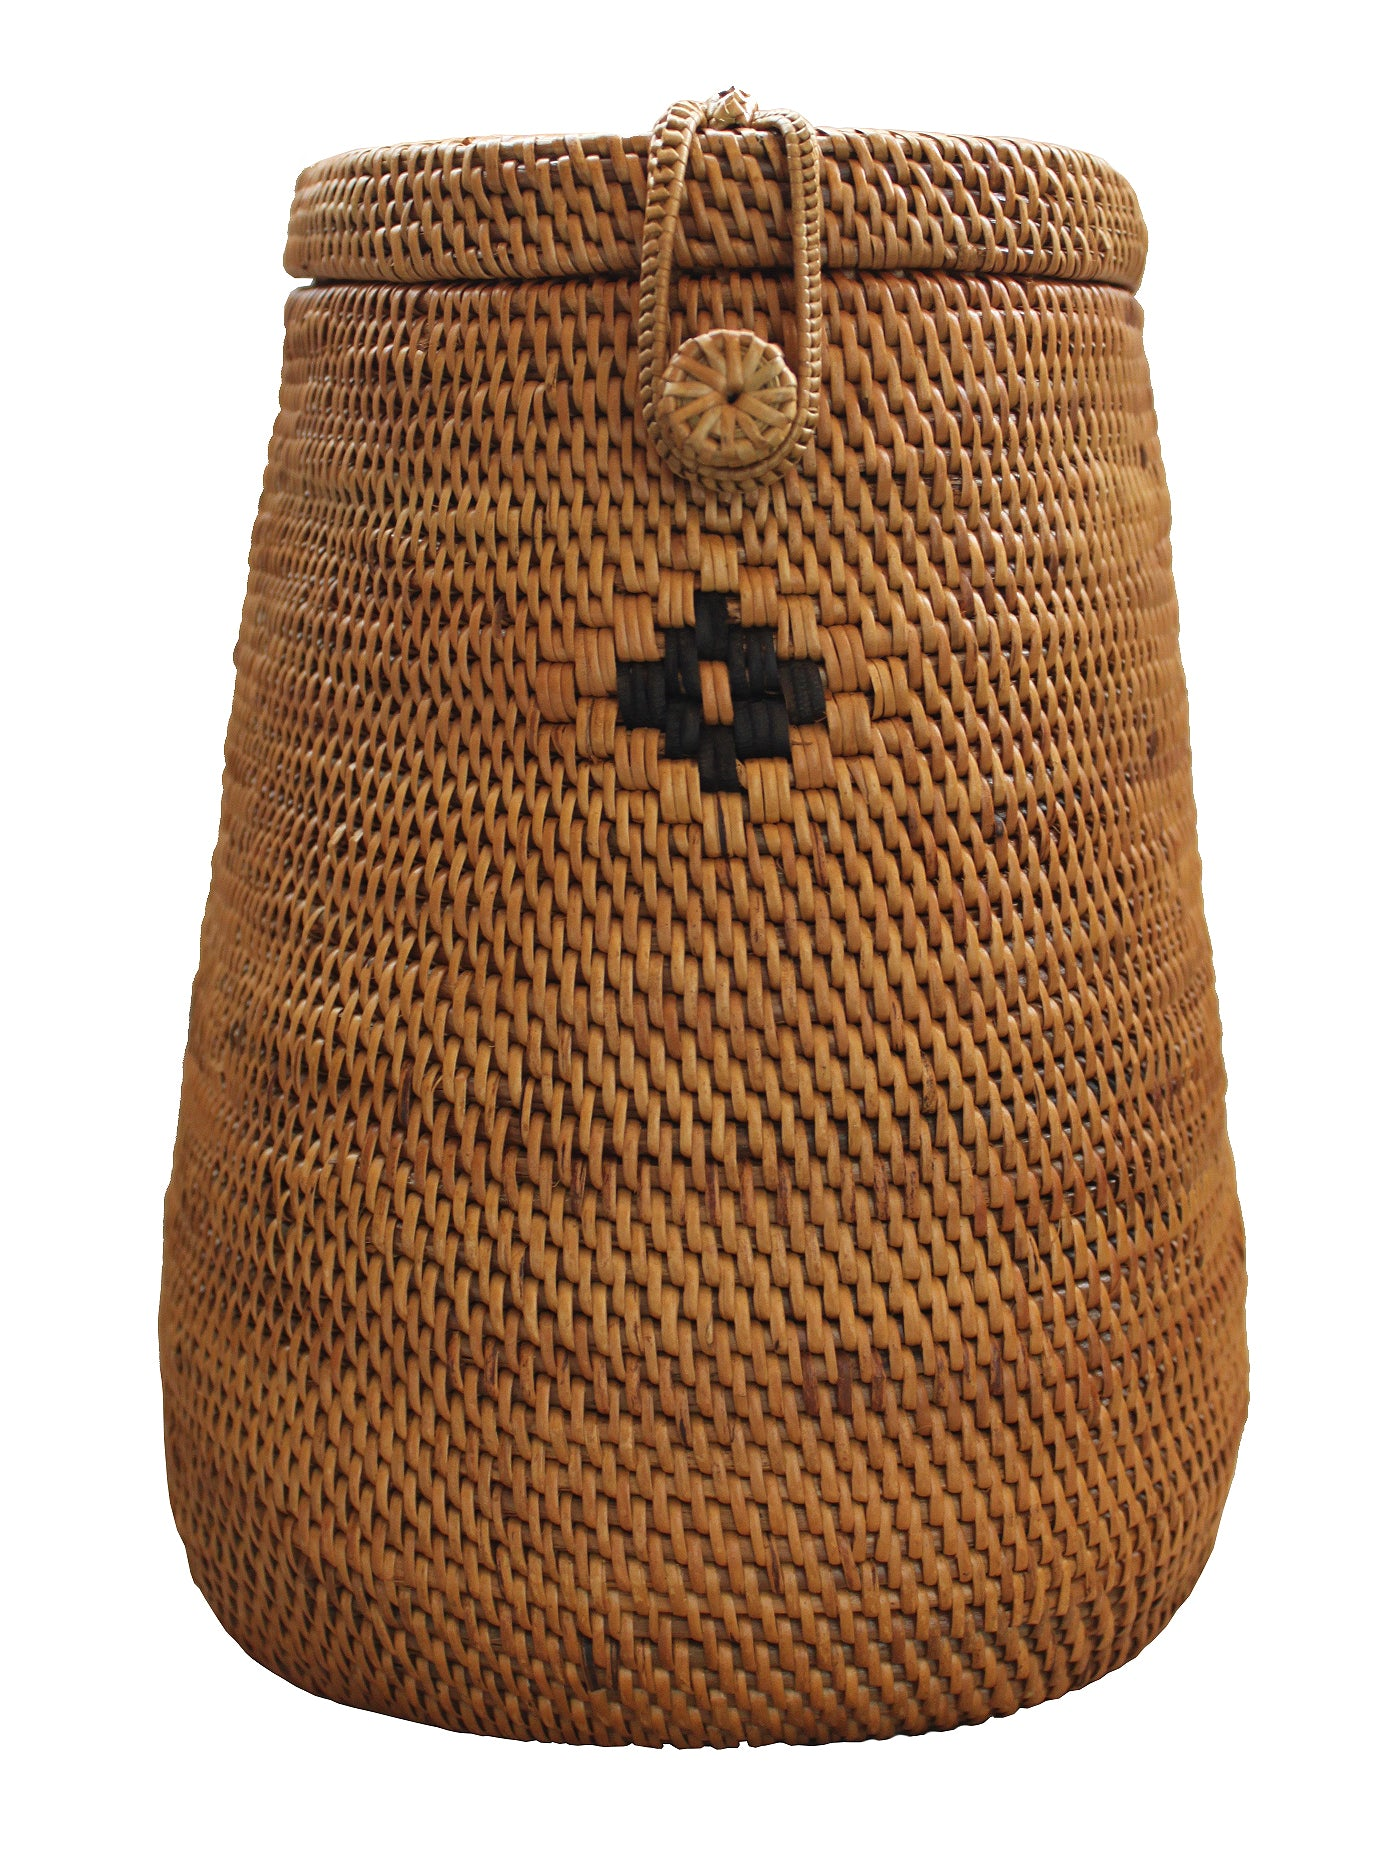 Rattan Backpack, Tall